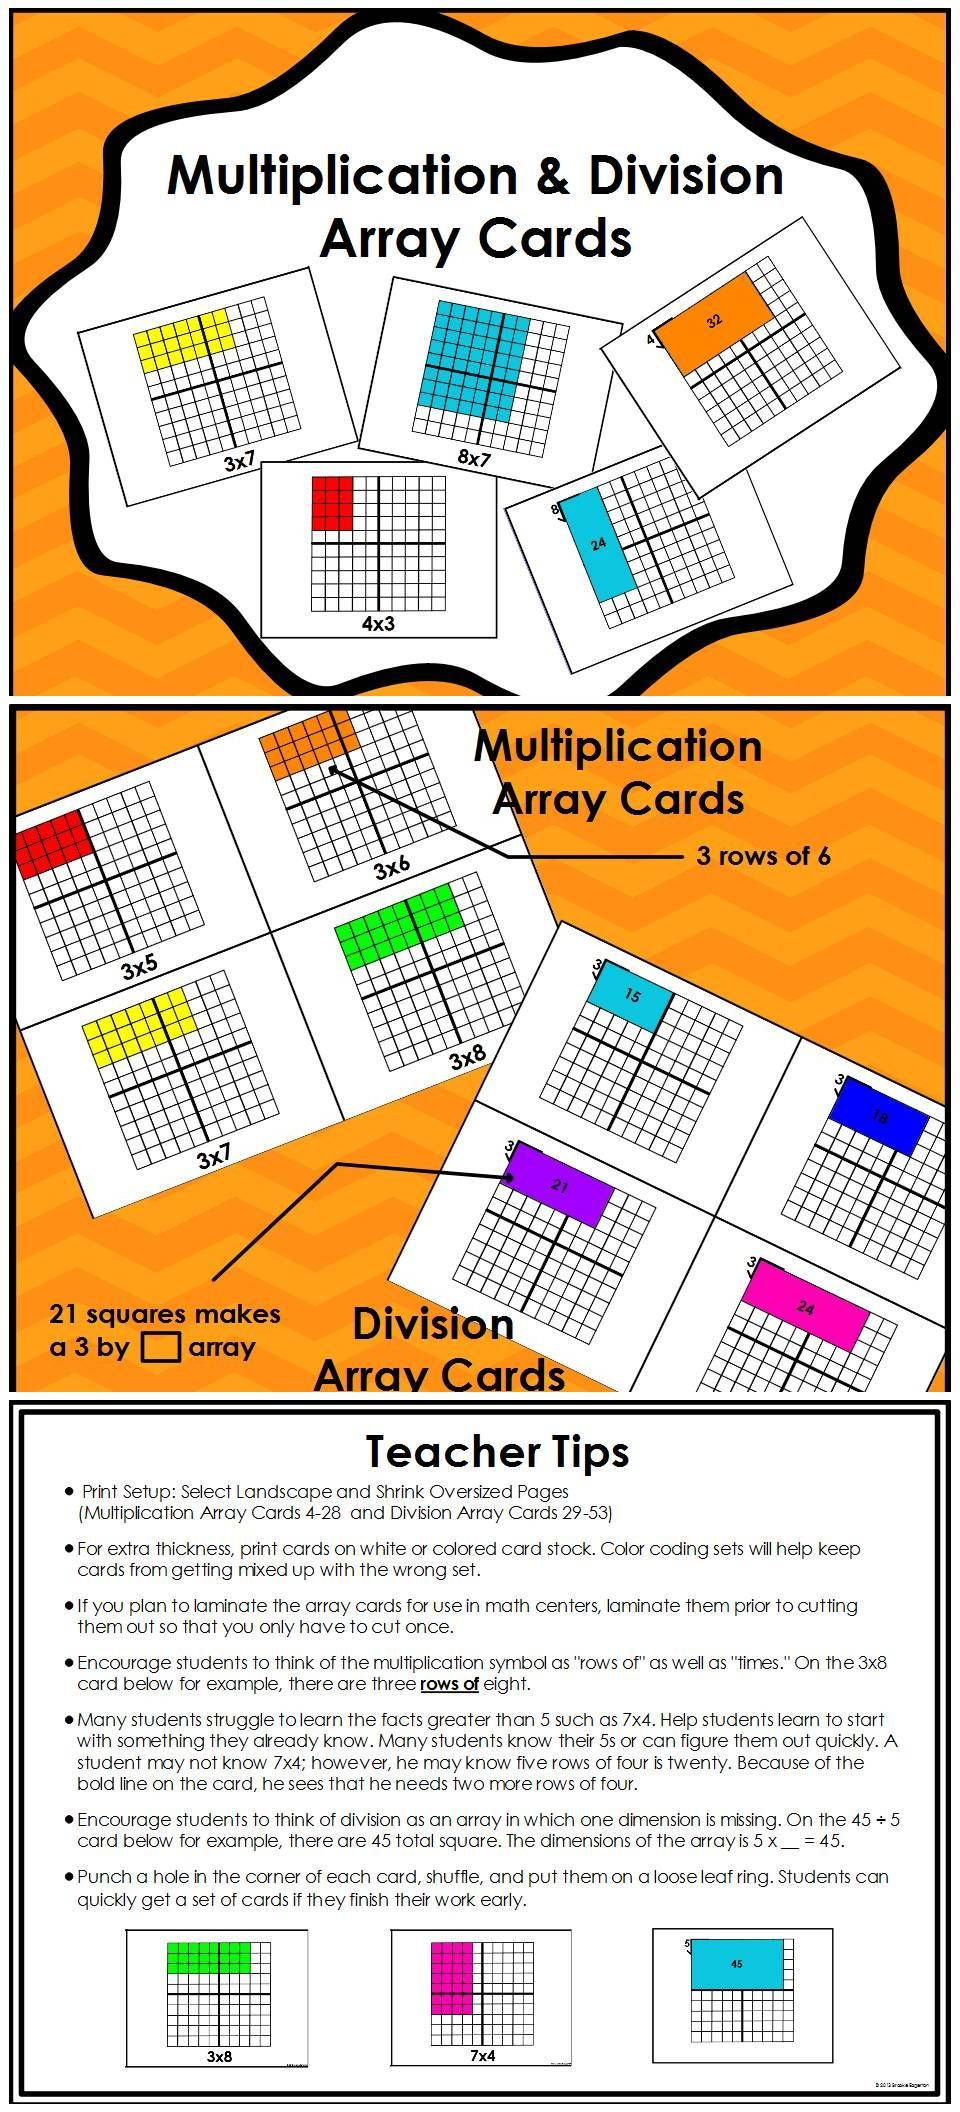 Multiplication and division arrays visual learning multiplication array cards division array cards these cards help students make connections between the nvjuhfo Choice Image